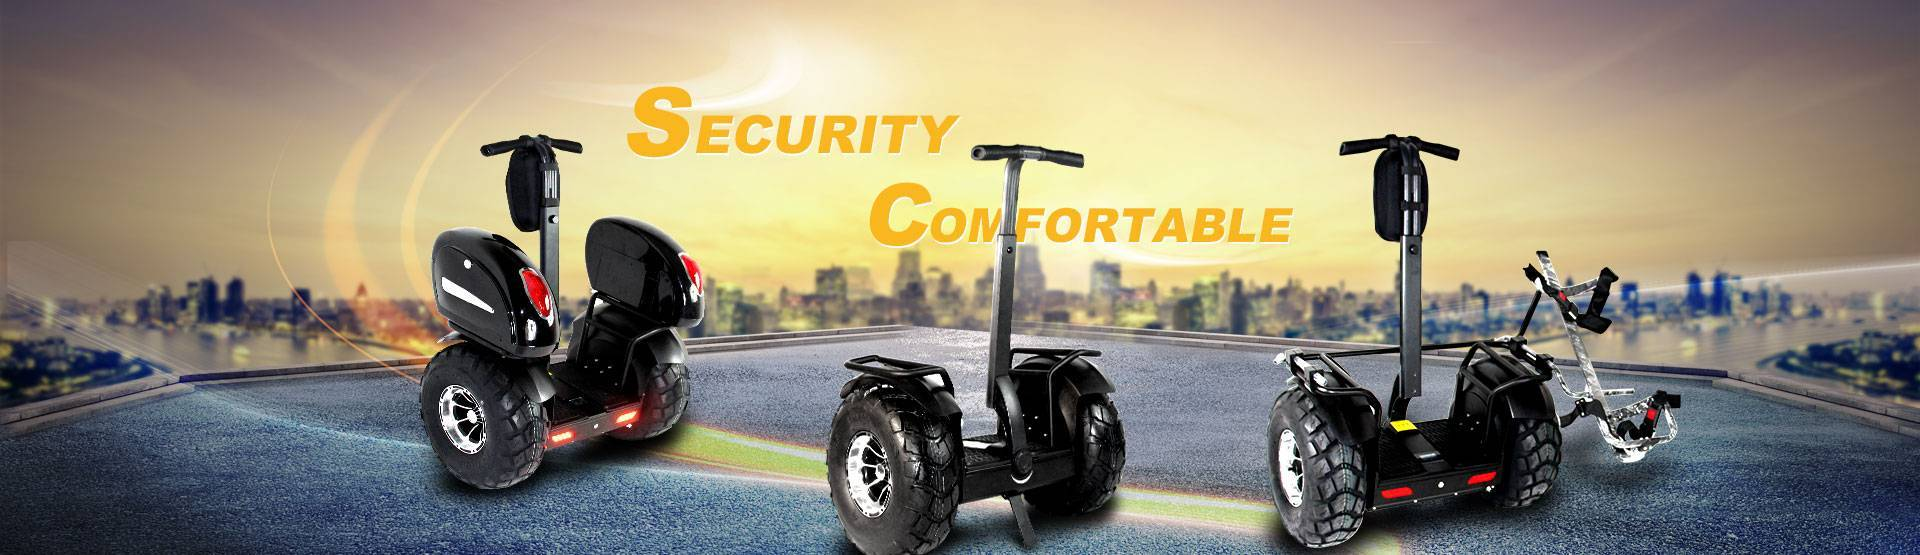 Rooder two wheel off road self balancing electric chariot scooter gyropode w7 w5 w5+ w5l with 19 inch wheels for security golf factory supplier exporter manufactering